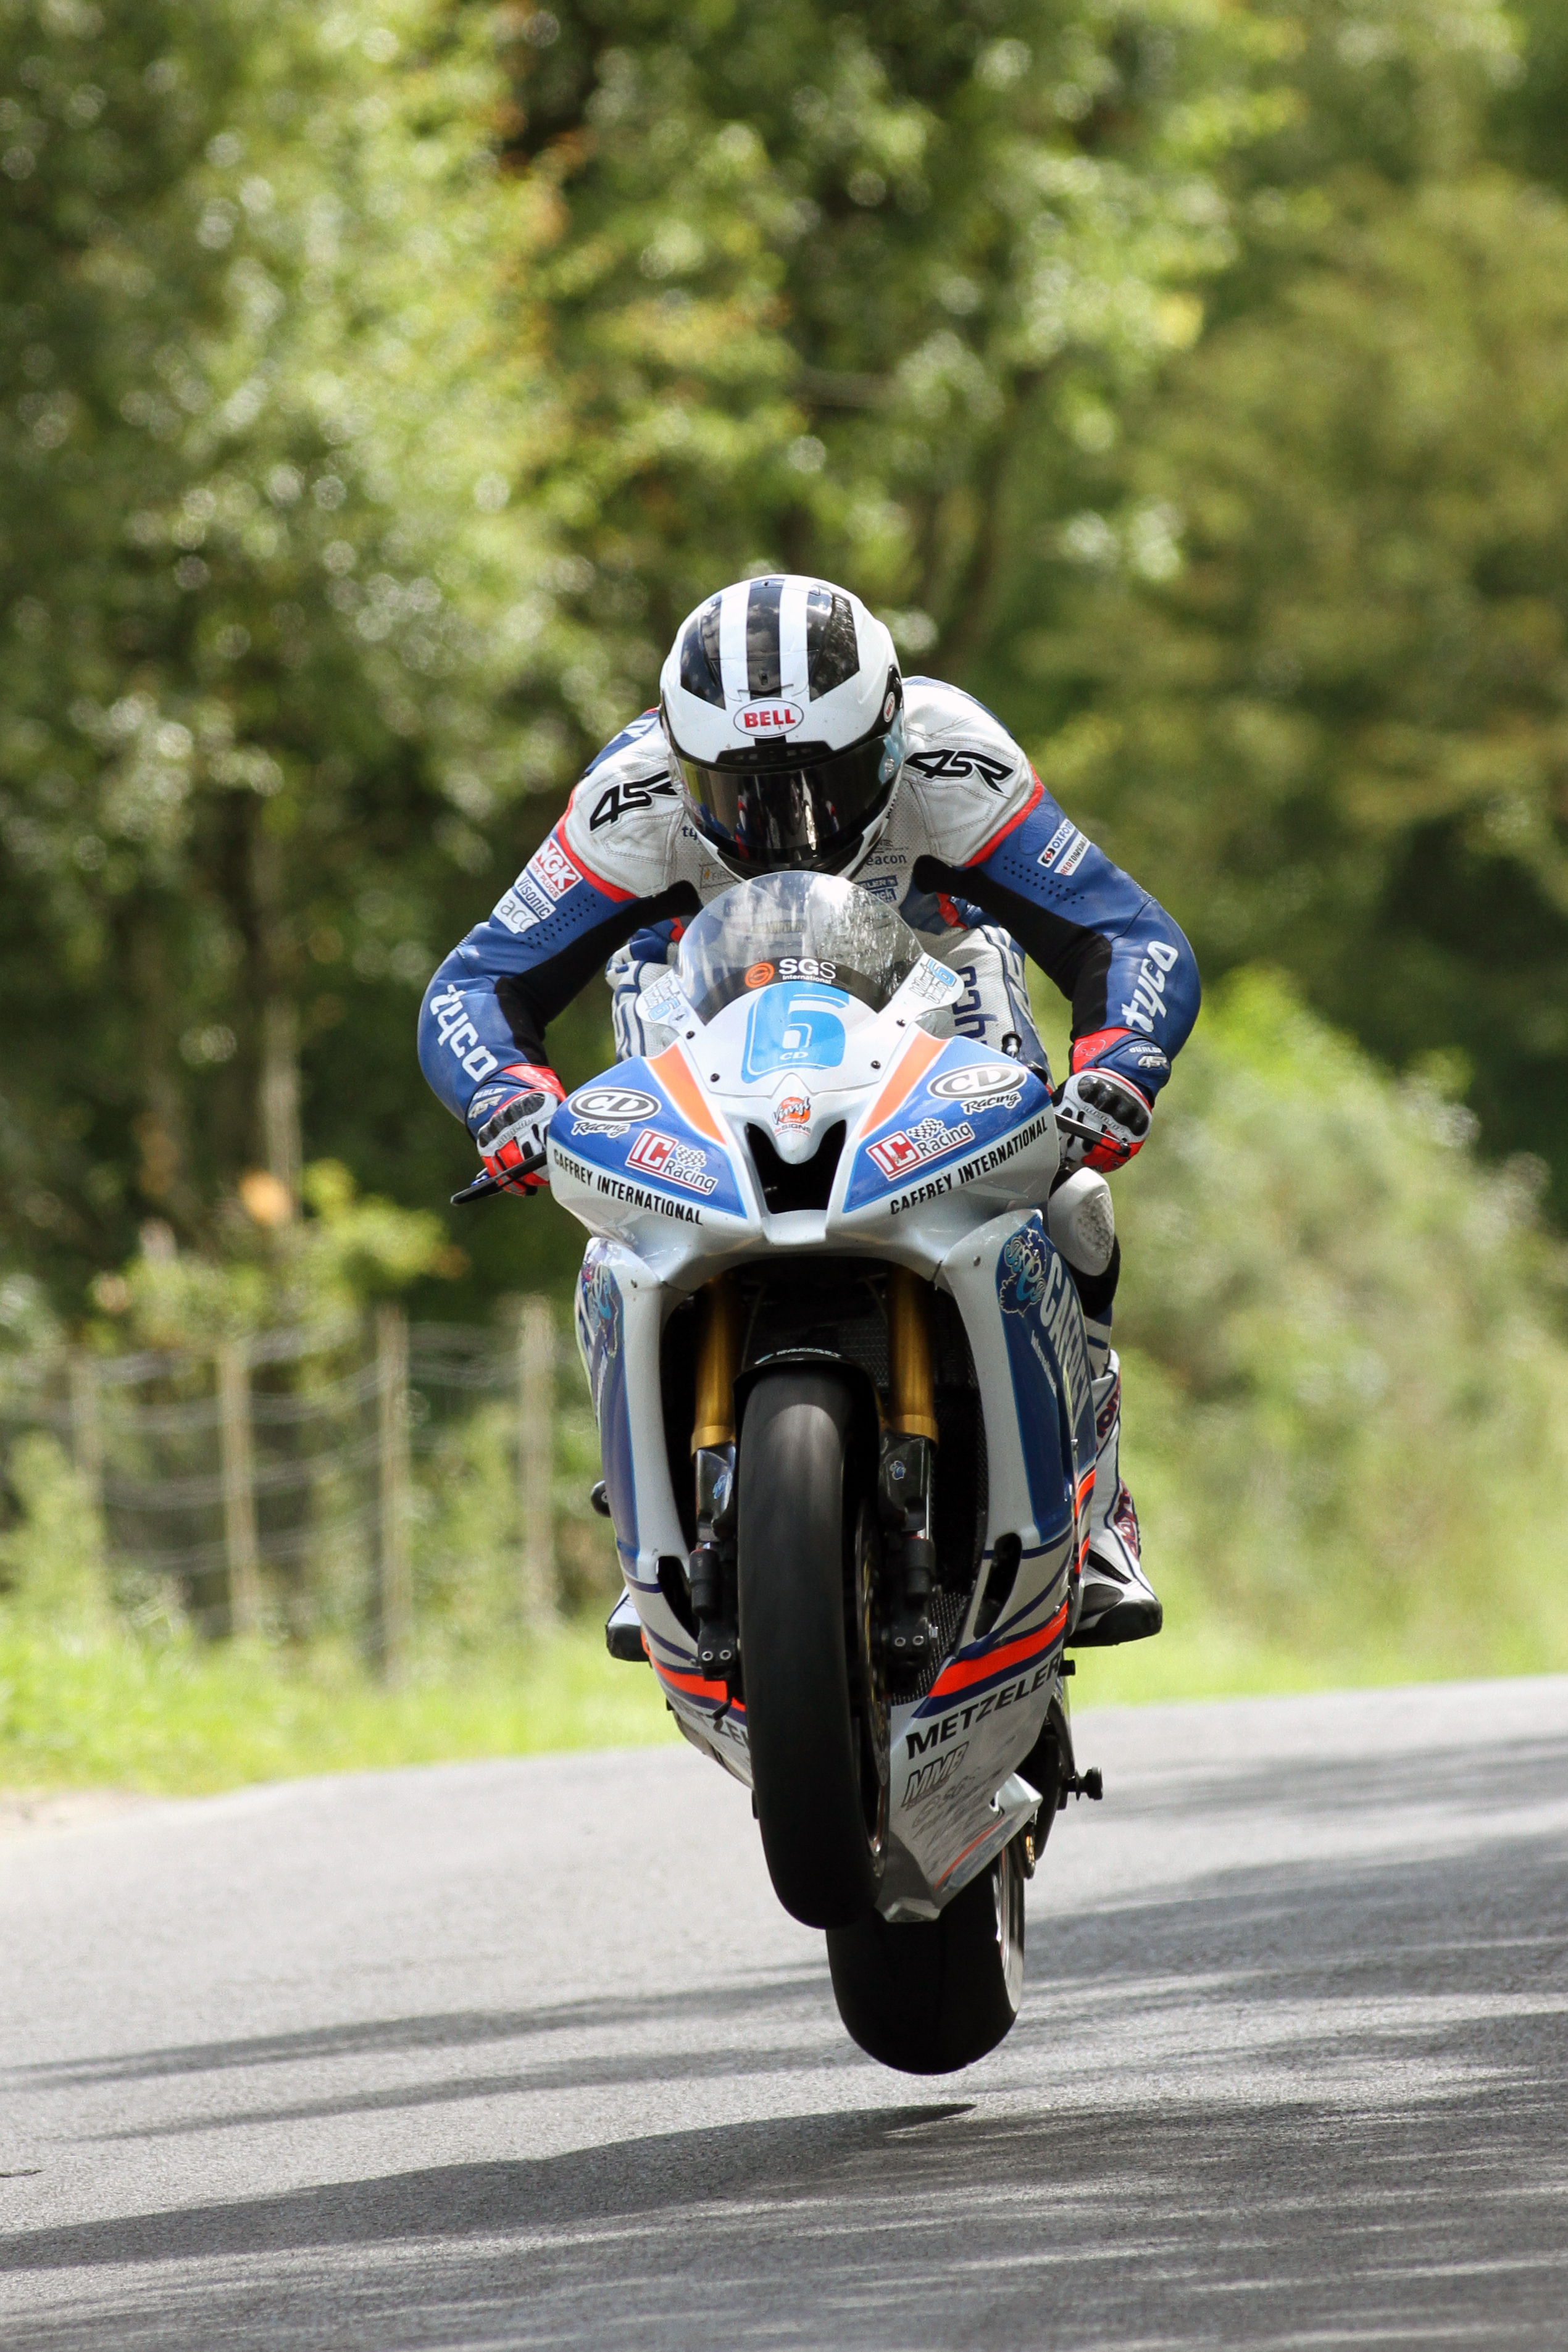 william dunlop 2015 irish road race supersport champion road racing news. Black Bedroom Furniture Sets. Home Design Ideas